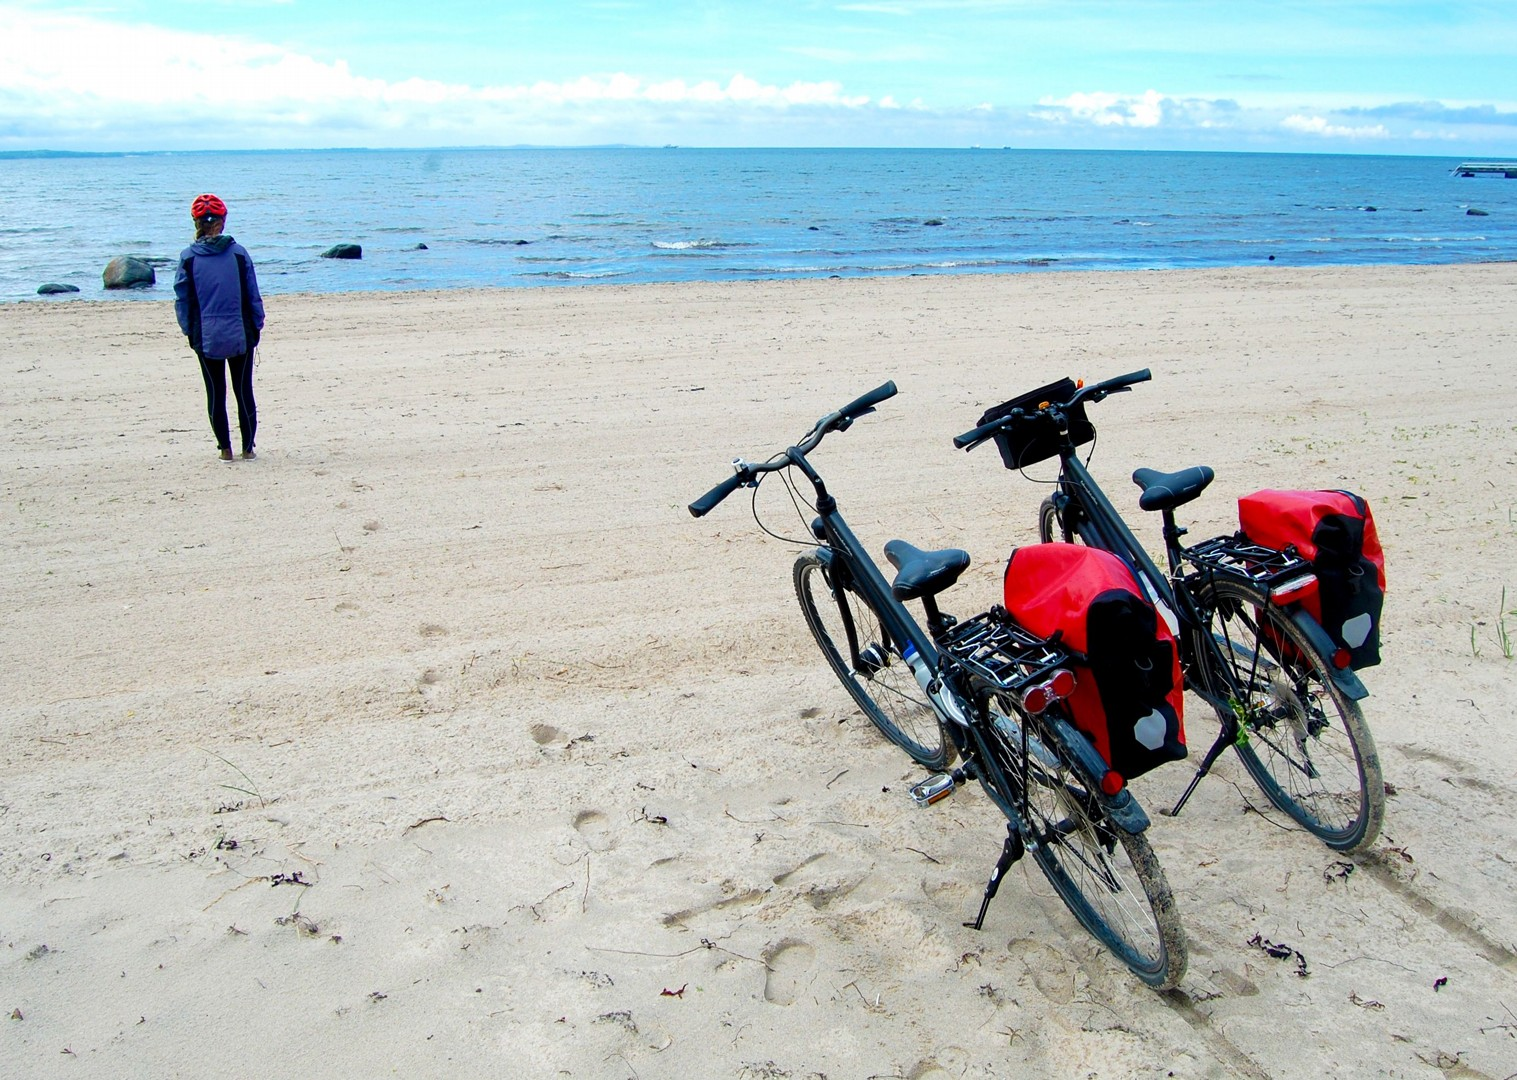 family-cycling-holiday-denmark-beach-experience.jpg - Denmark - Zooming Through Zealand - Self-Guided Family Cycling Holiday - Family Cycling